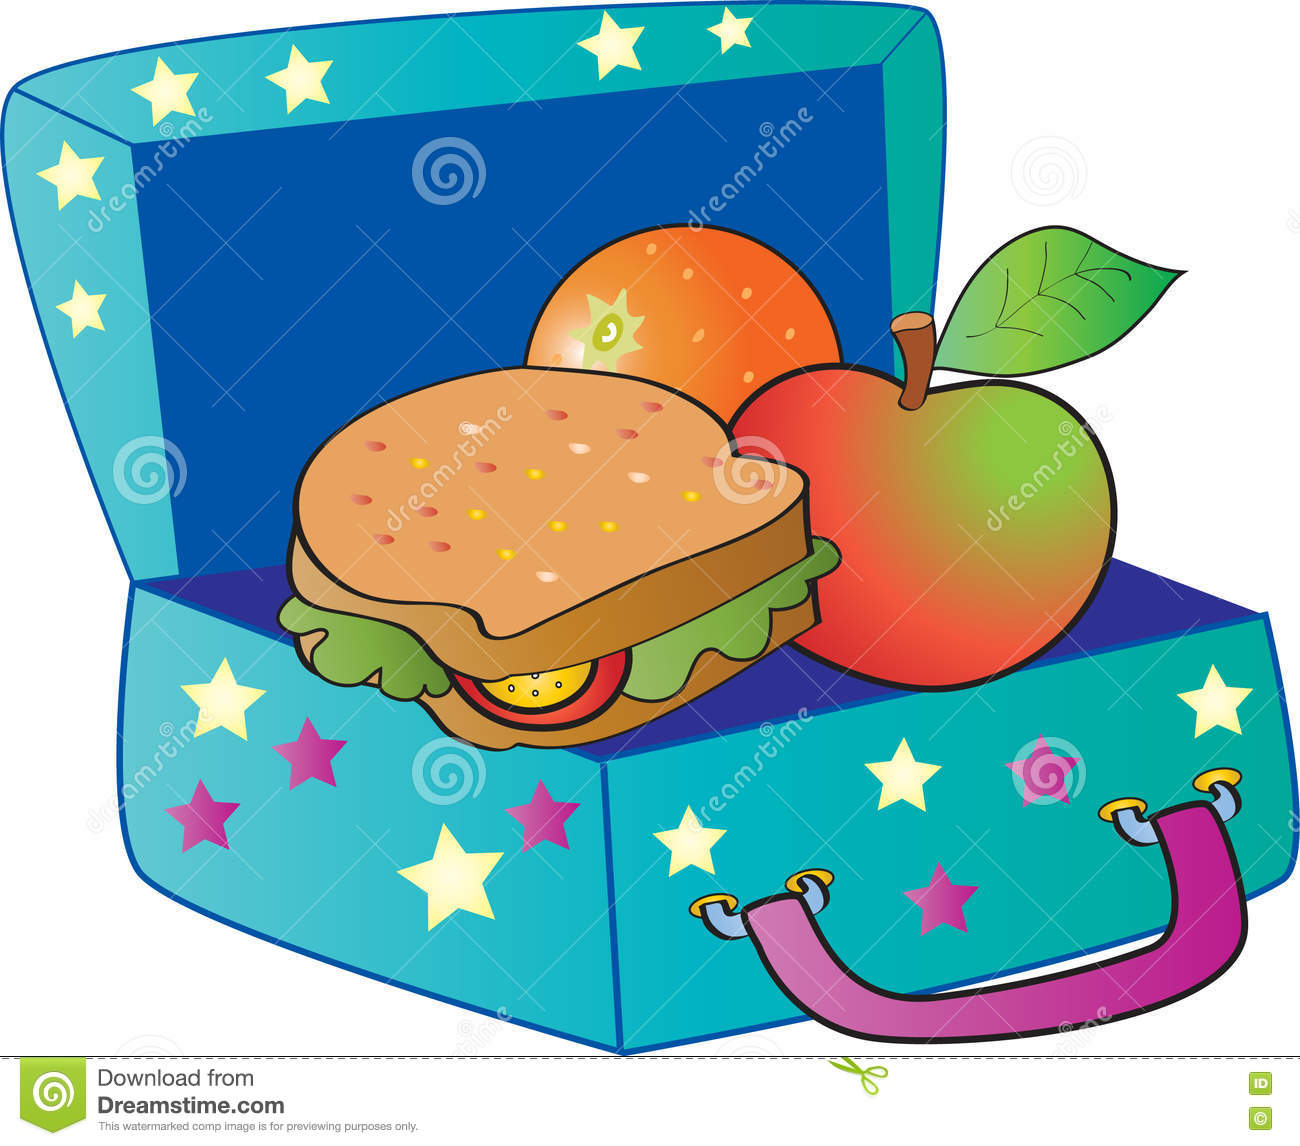 14 cliparts for free. Download Lunchbox clipart cubby and use in.